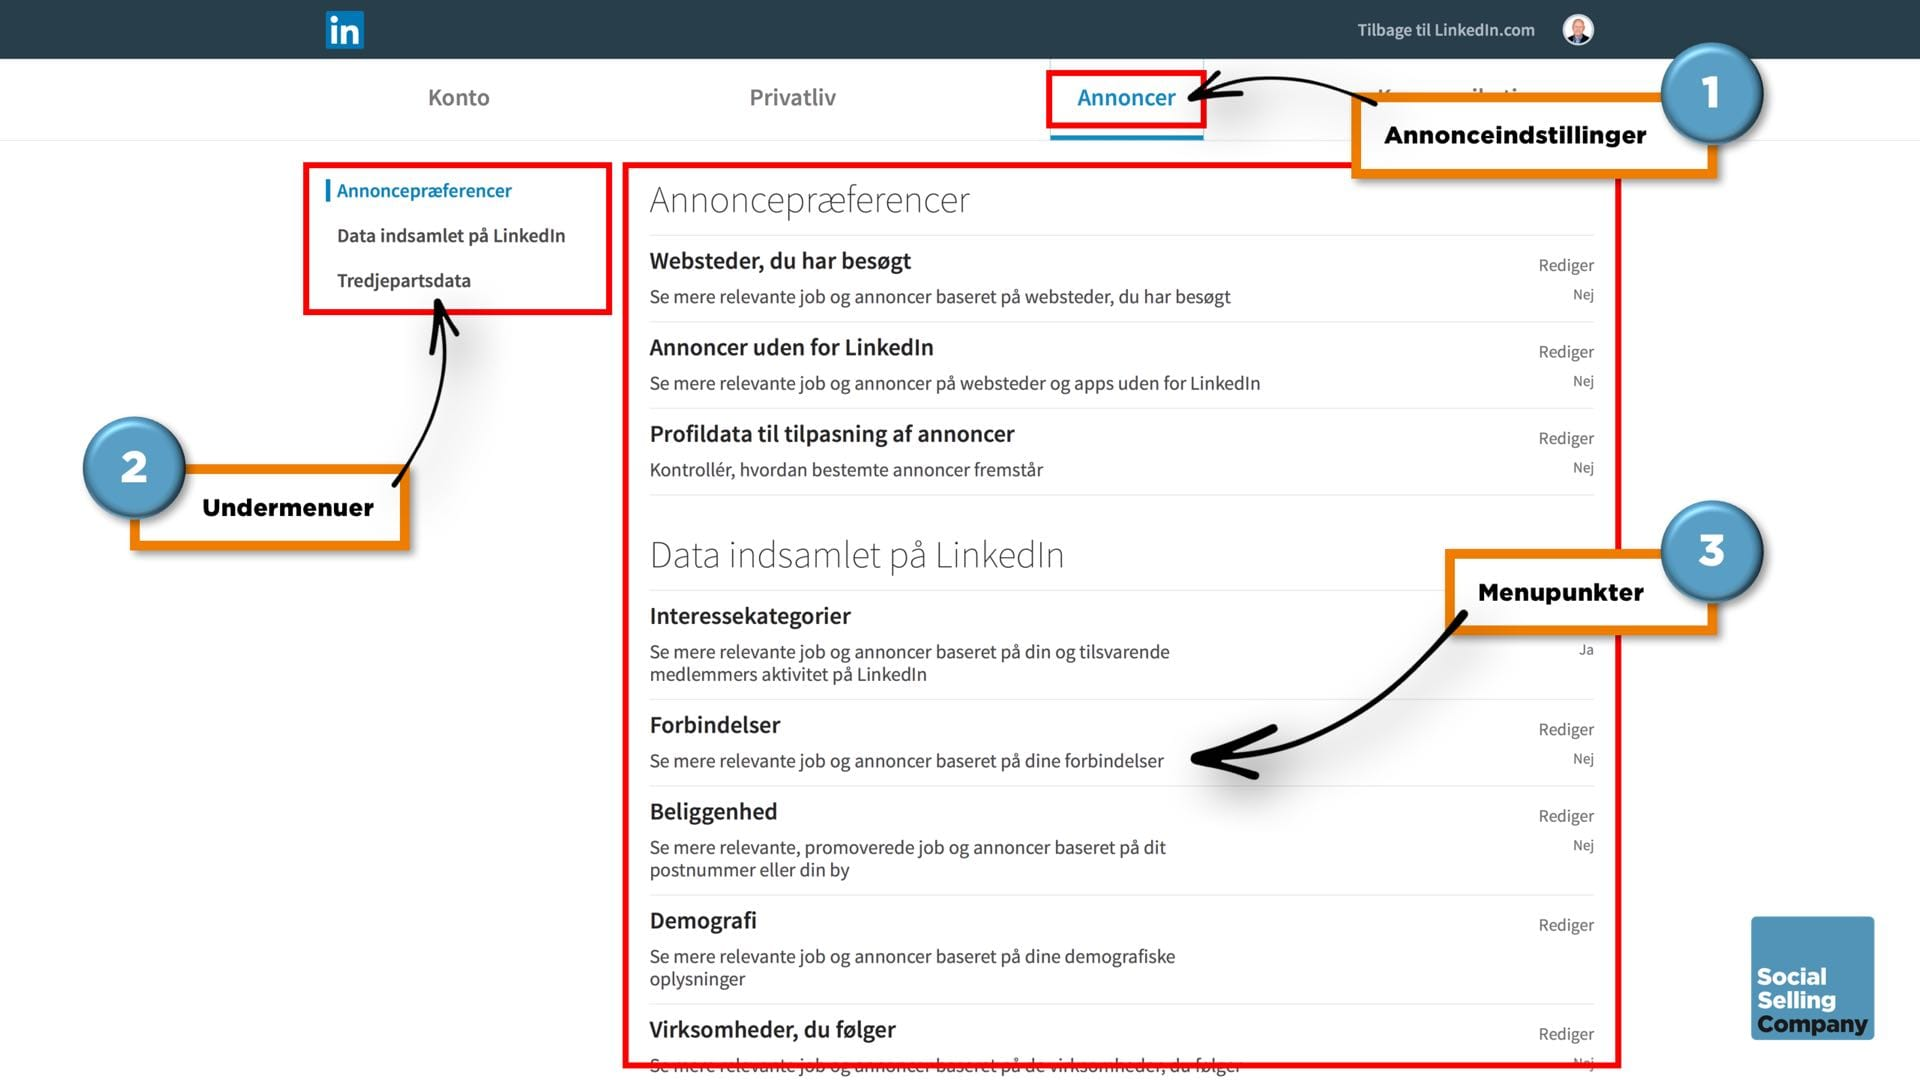 Den ultimative guide til den perfekte LinkedIn profil